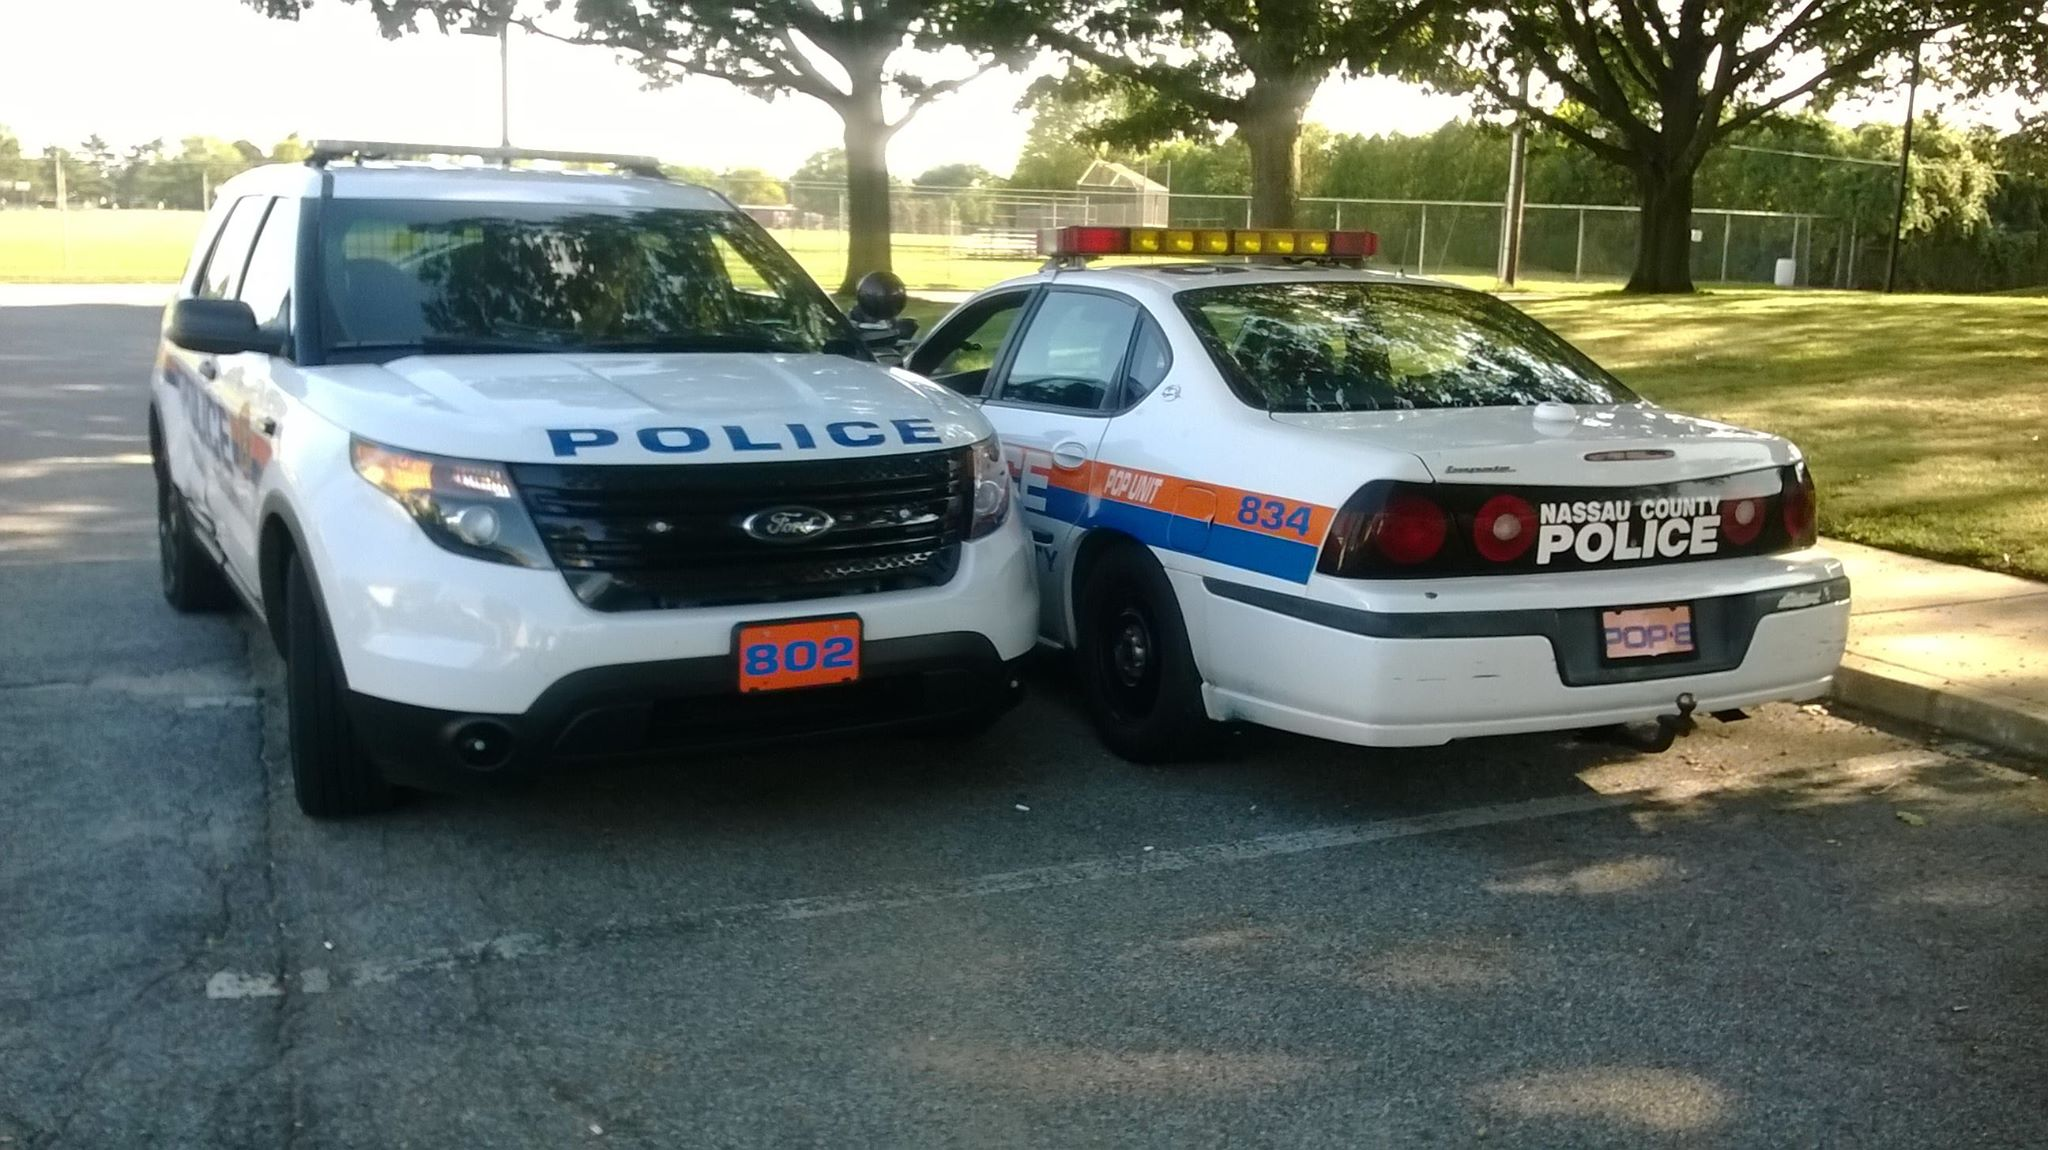 Retired Police Cars for Sale Near Me Beautiful Police Vehicles In the United States and Canada Wikipedia